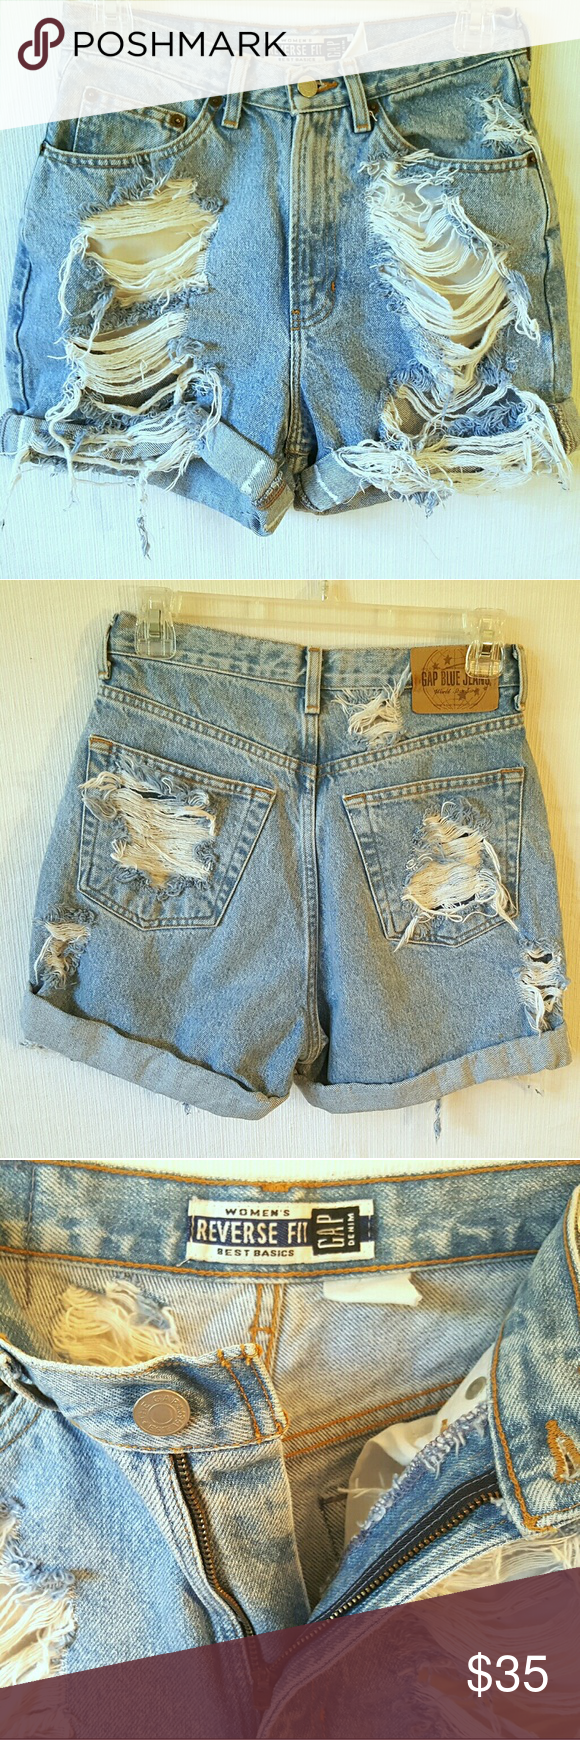 """Vintage High Waisted Distressed Cuffed Jean Shorts These are beautiful Gap hand distressed double turned twisted cuff (with sticking to secure). These genuine vintage """"mom jeans' feature a beautiful light stone wash. The fit is so beautiful and makes your booty look AMAZING!!!   30"""" waist, 12"""" front rise, 16"""" back rise 3"""" inseam 14.5 total length Shorts Jean Shorts"""